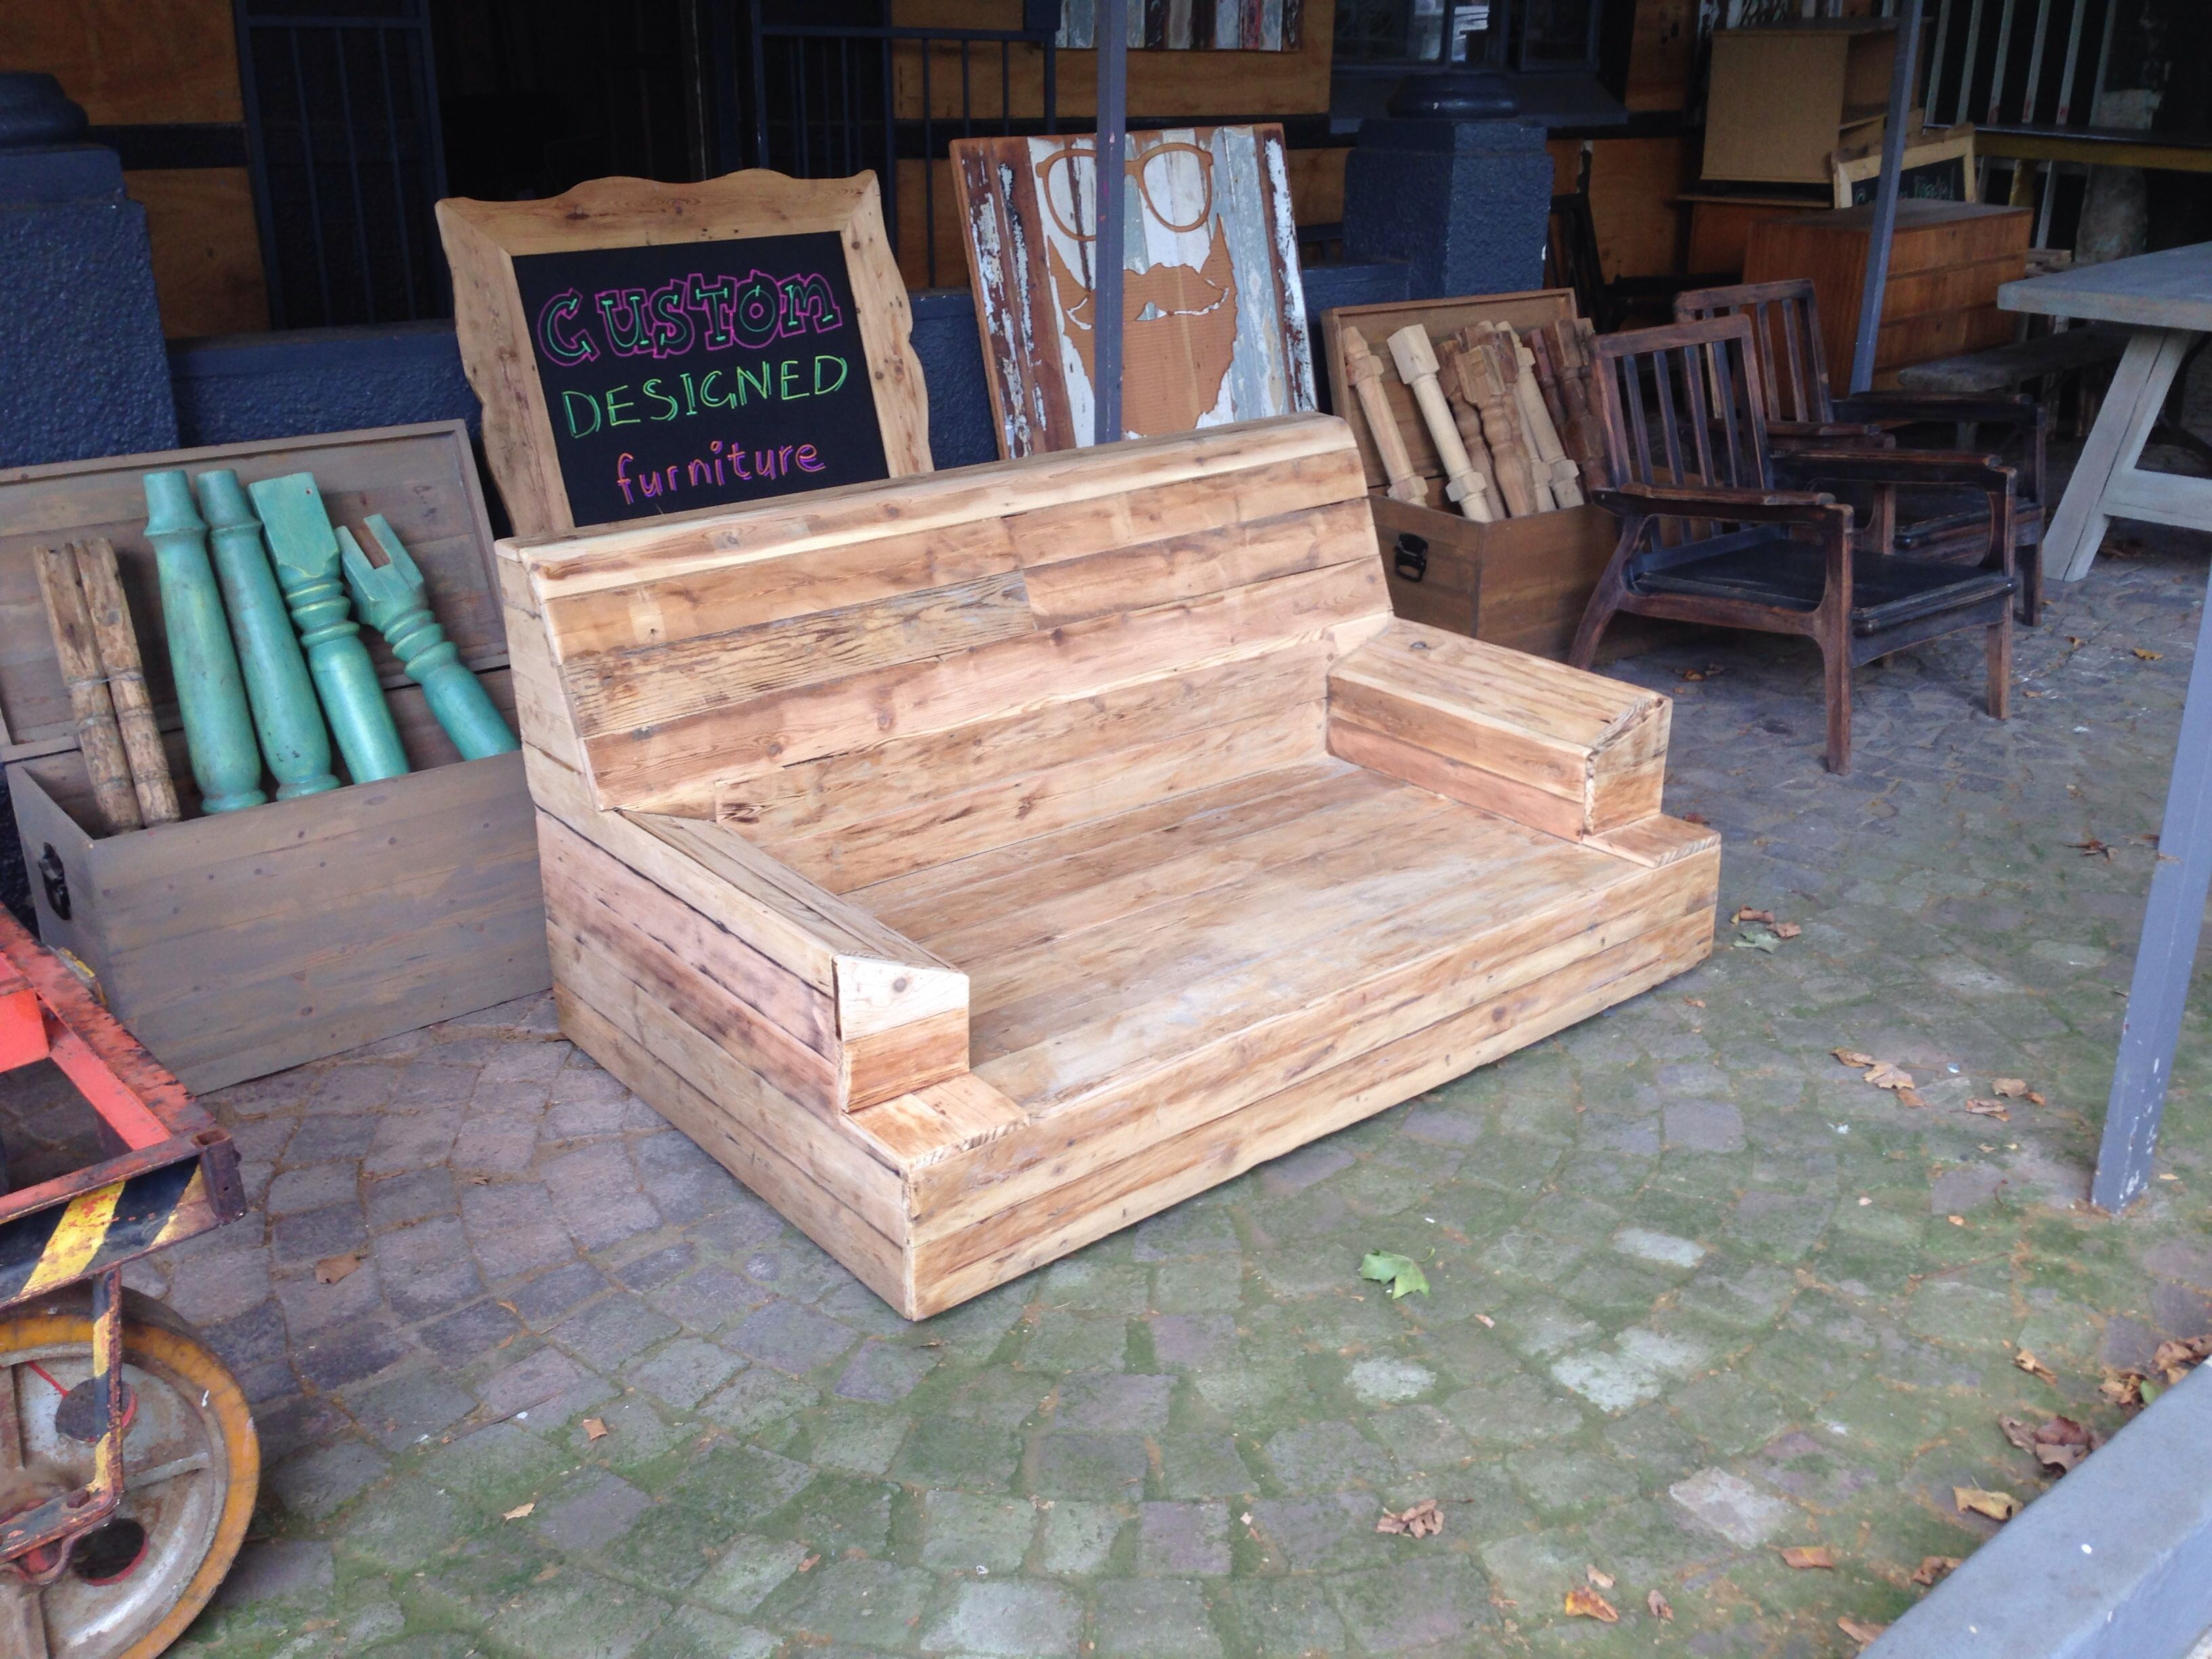 Diy outdoor couch sofa frame - Old Sofa Frame Converted Into Outdoor Wood Cladded Couch By Retro Noah